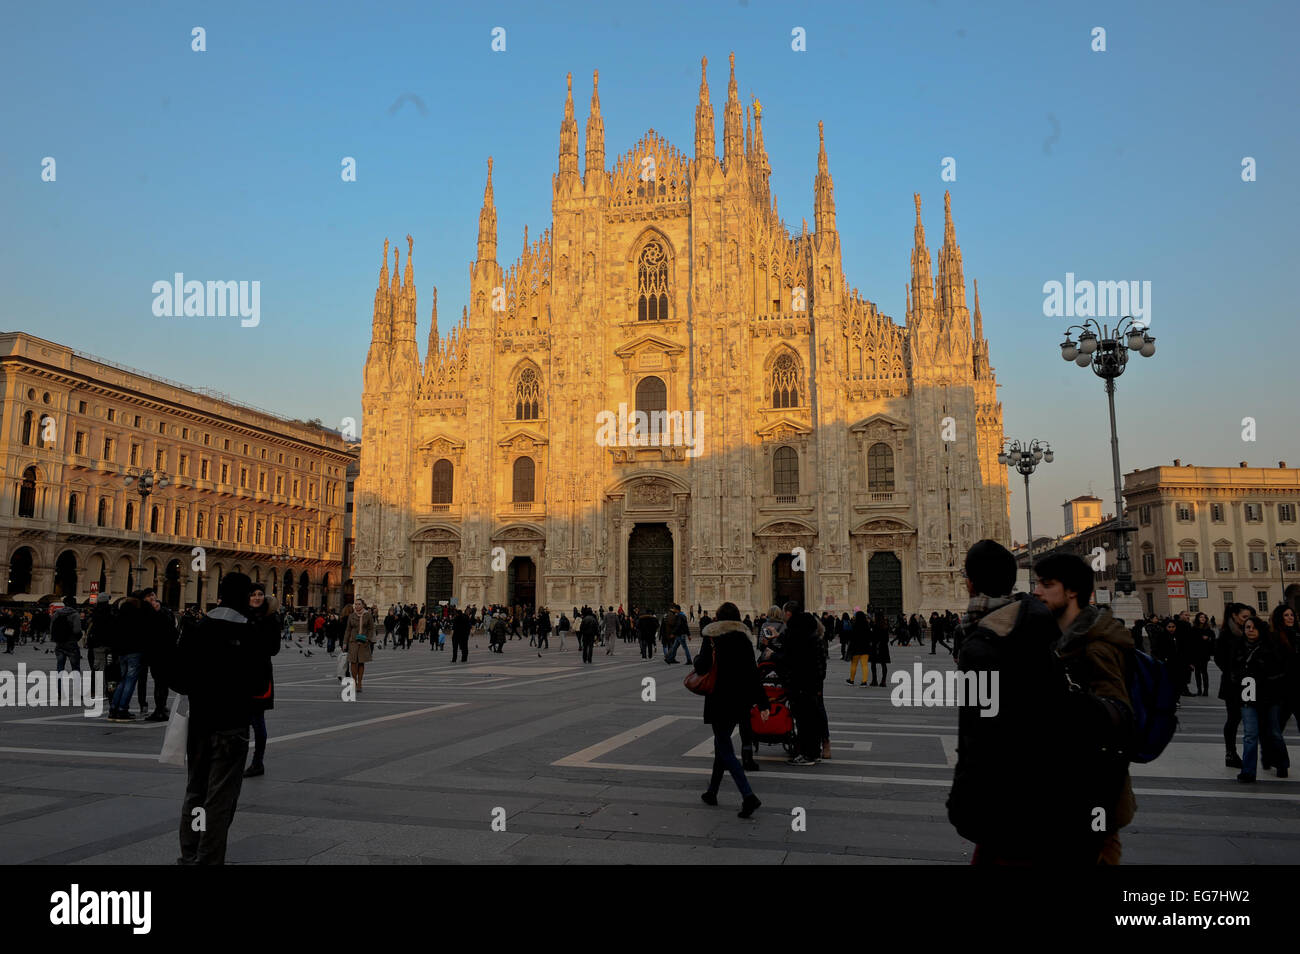 Milan, Duomo, Cathedral (Italian: Duomo di Milano) is the cathedral church of Milan in Lombardy, Italy. Stock Photo